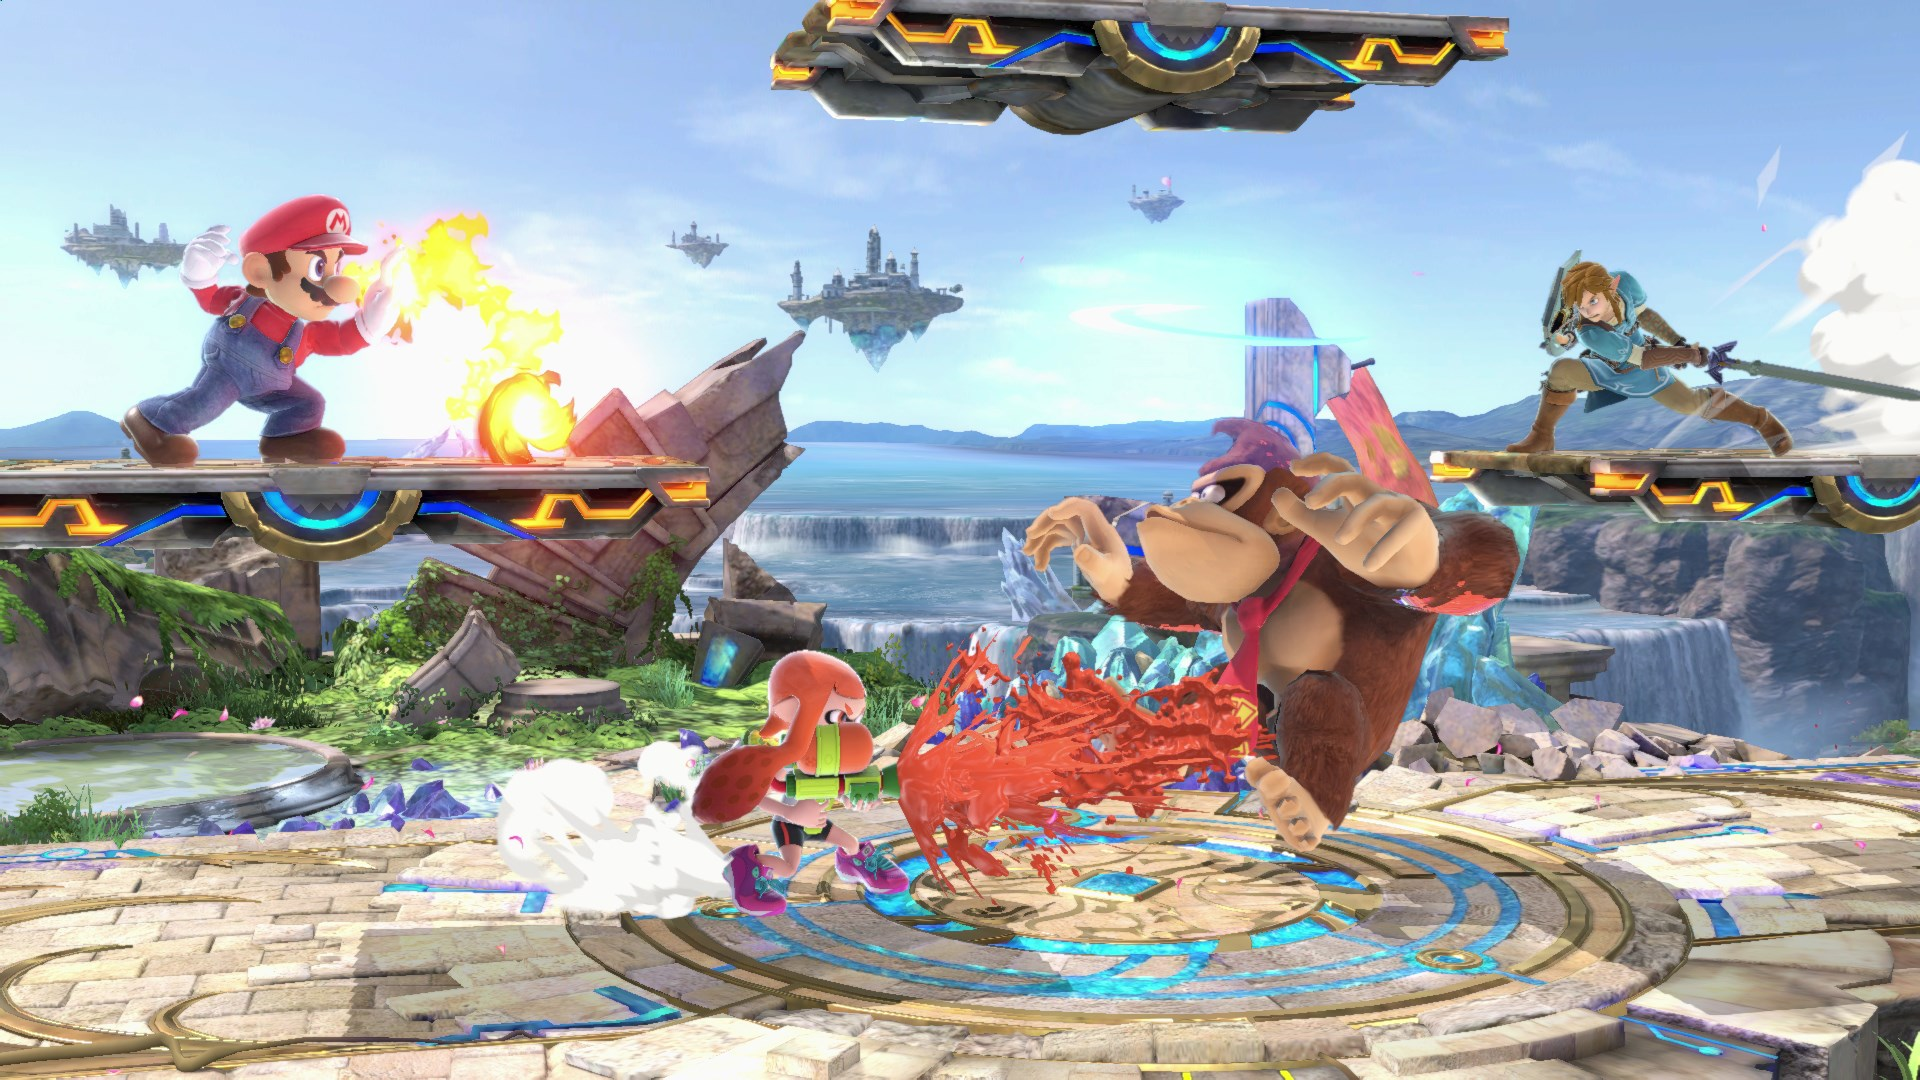 Super Smash Bros. Ultimate is the biggest game at Evo 2019